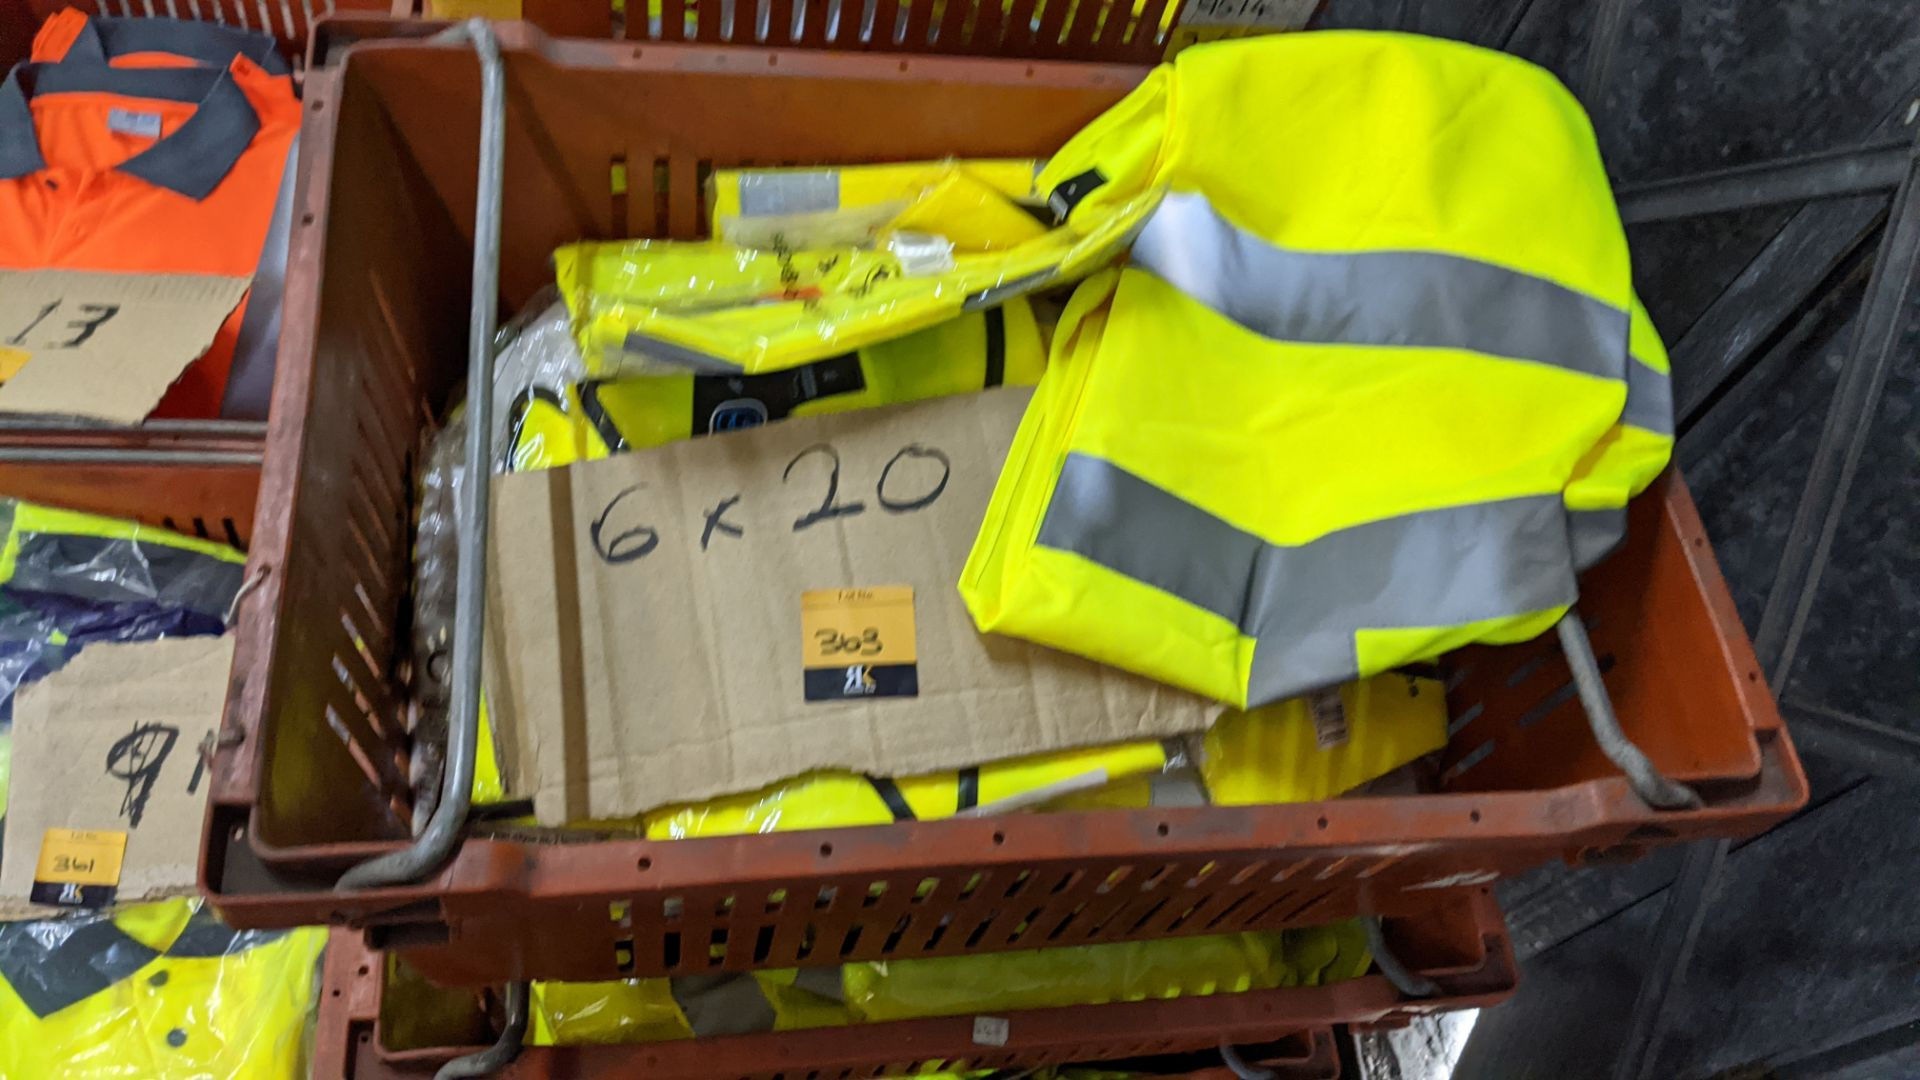 20 off yellow hi-vis vests - Image 2 of 3